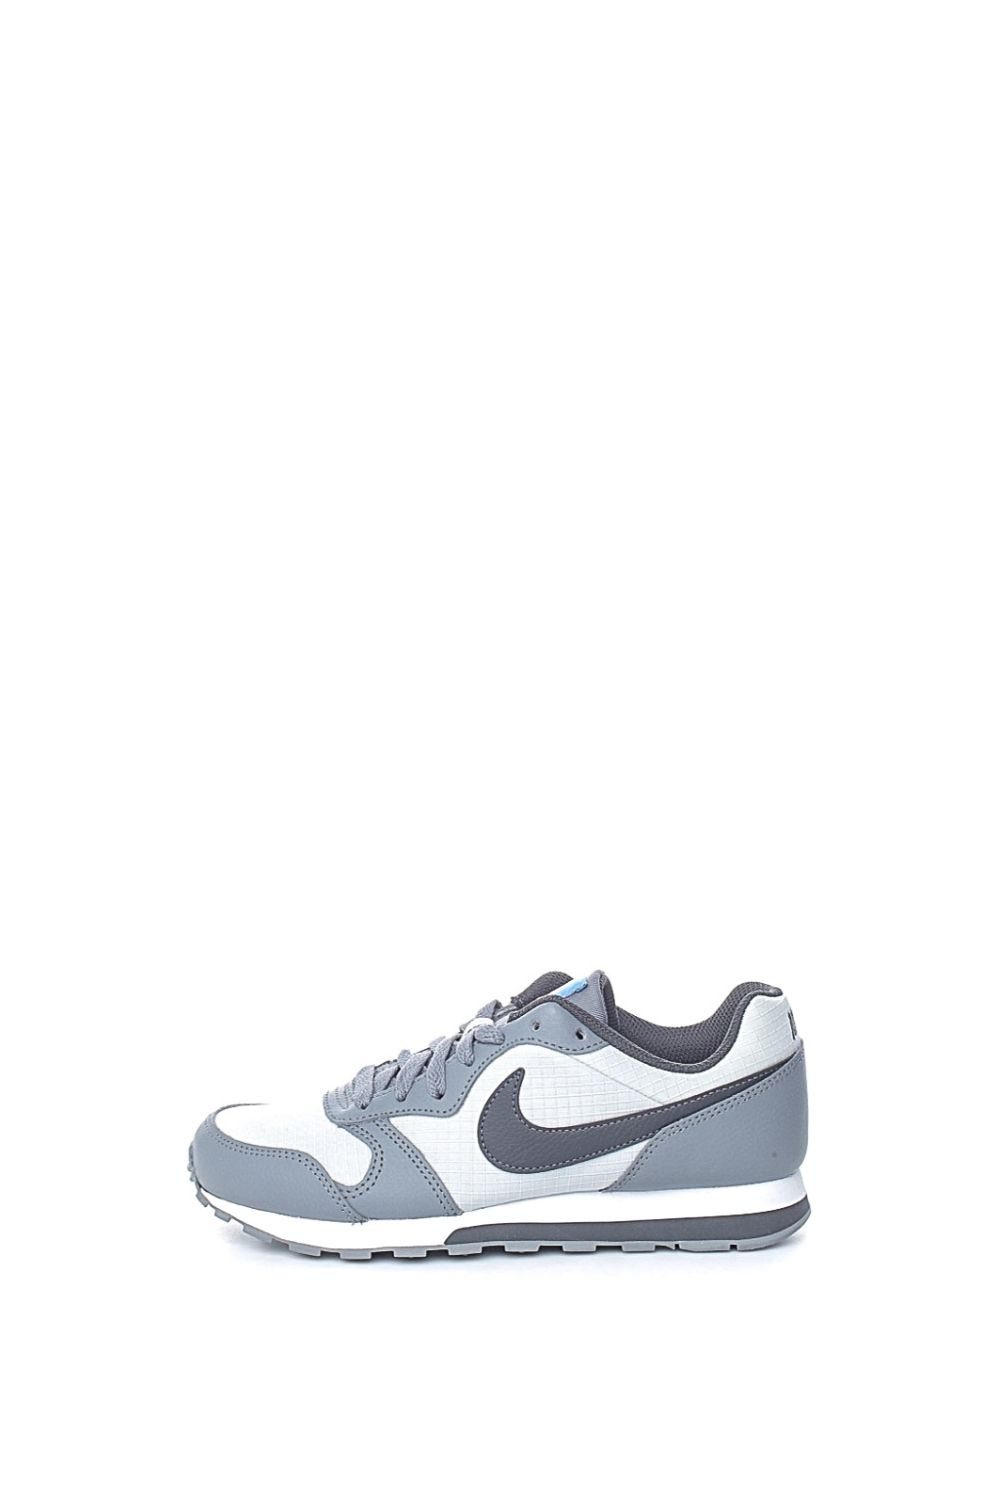 542ec19e972 Collective Online NIKE – Παιδικά αθλητικά παπούτσια NIKE MD RUNNER 2 (GS)  γκρι